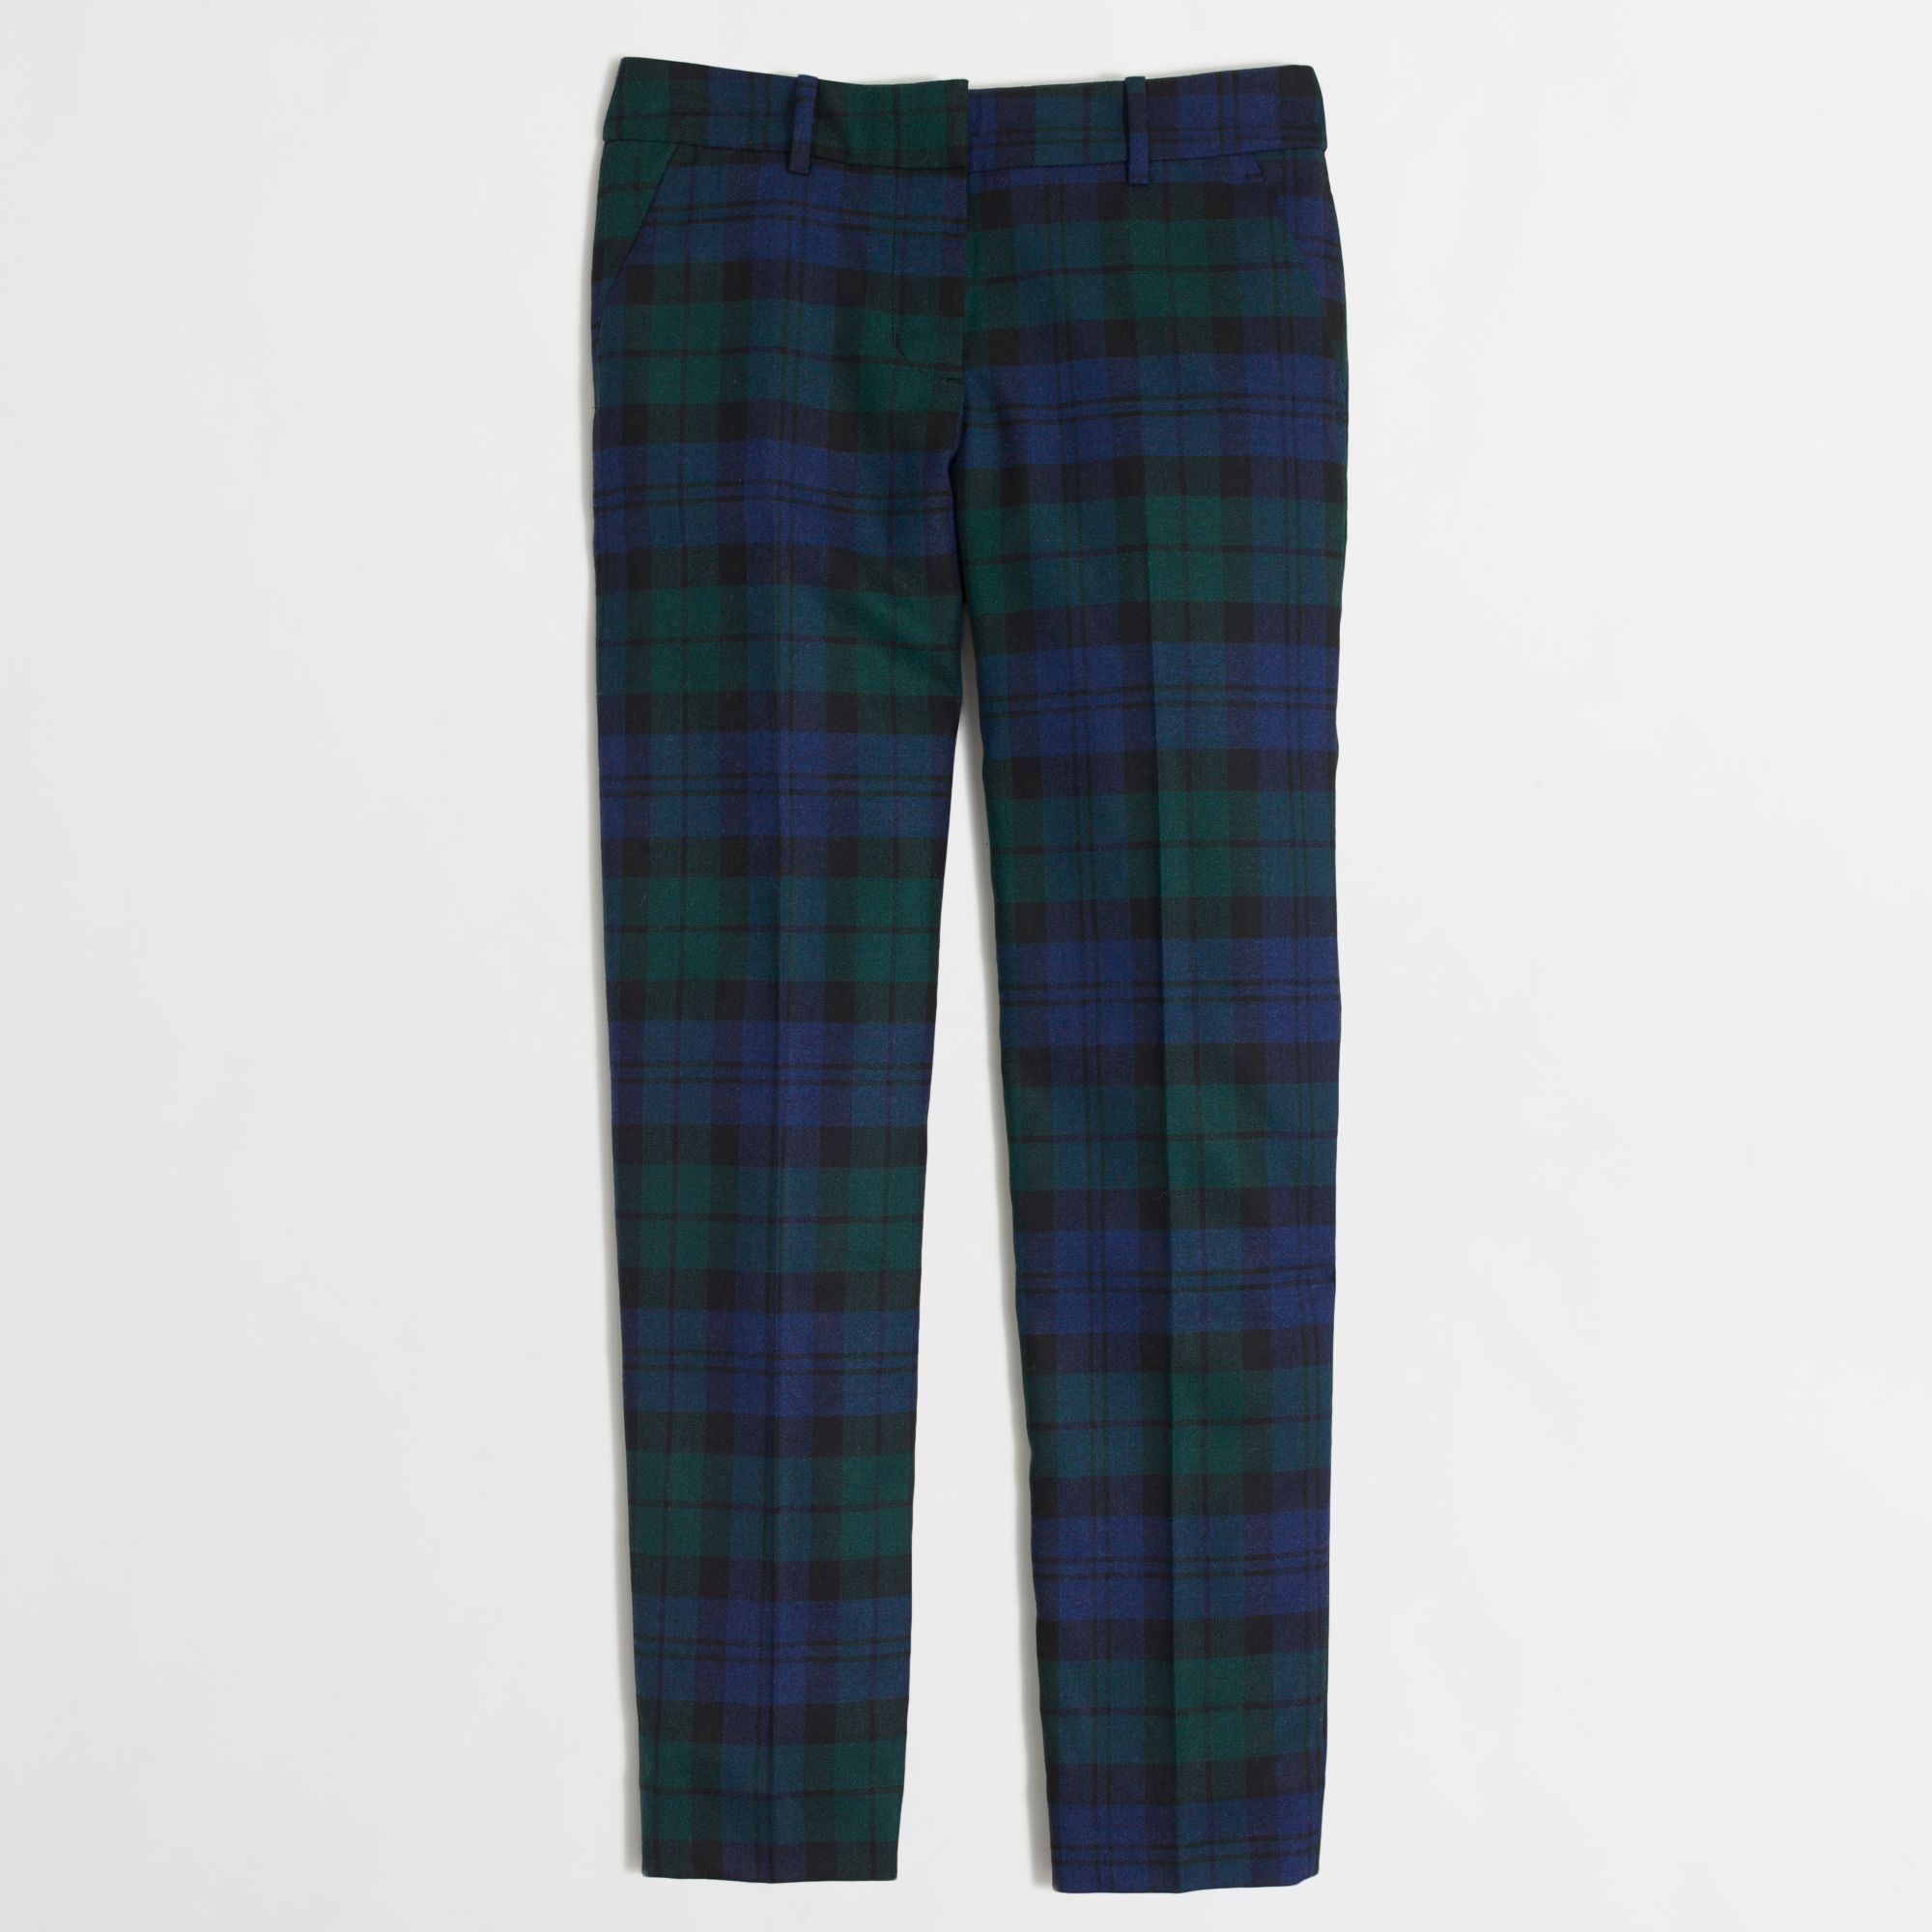 J.crew Factory Skimmer Pant in Black Watch Plaid in Blue | Lyst